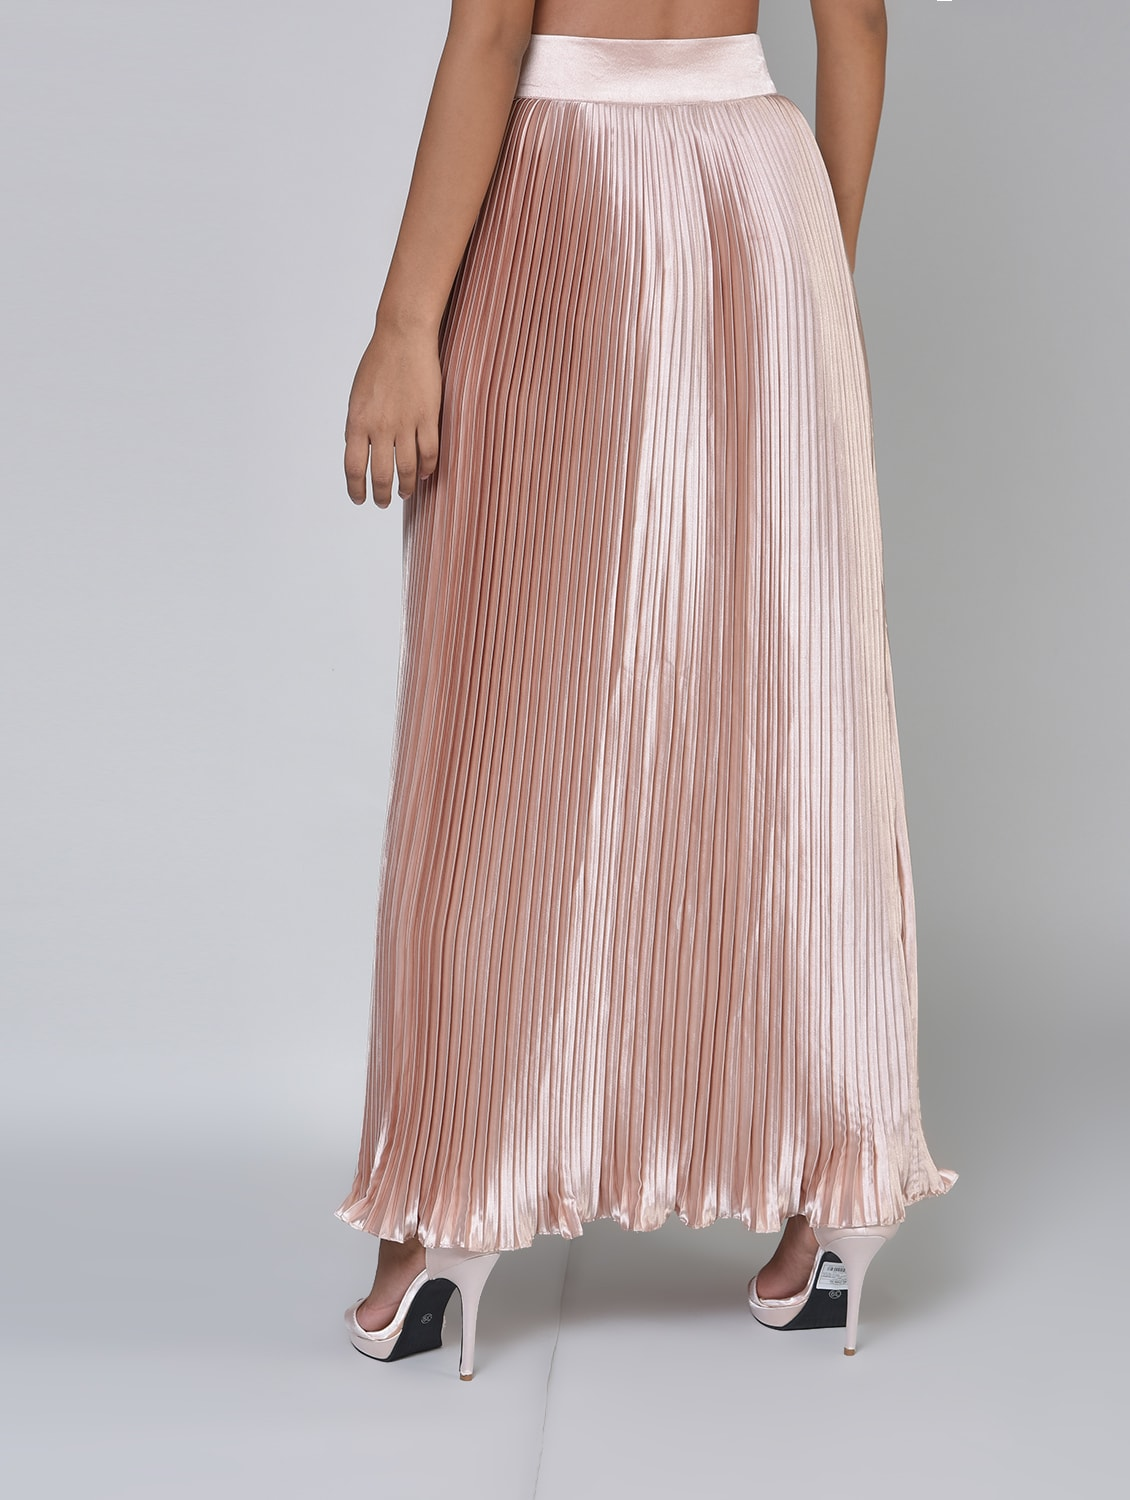 9463c0658197 Buy Metallic Accordion Pleat Skirt for Women from Primrose for ₹805 at 68%  off | 2019 Limeroad.com